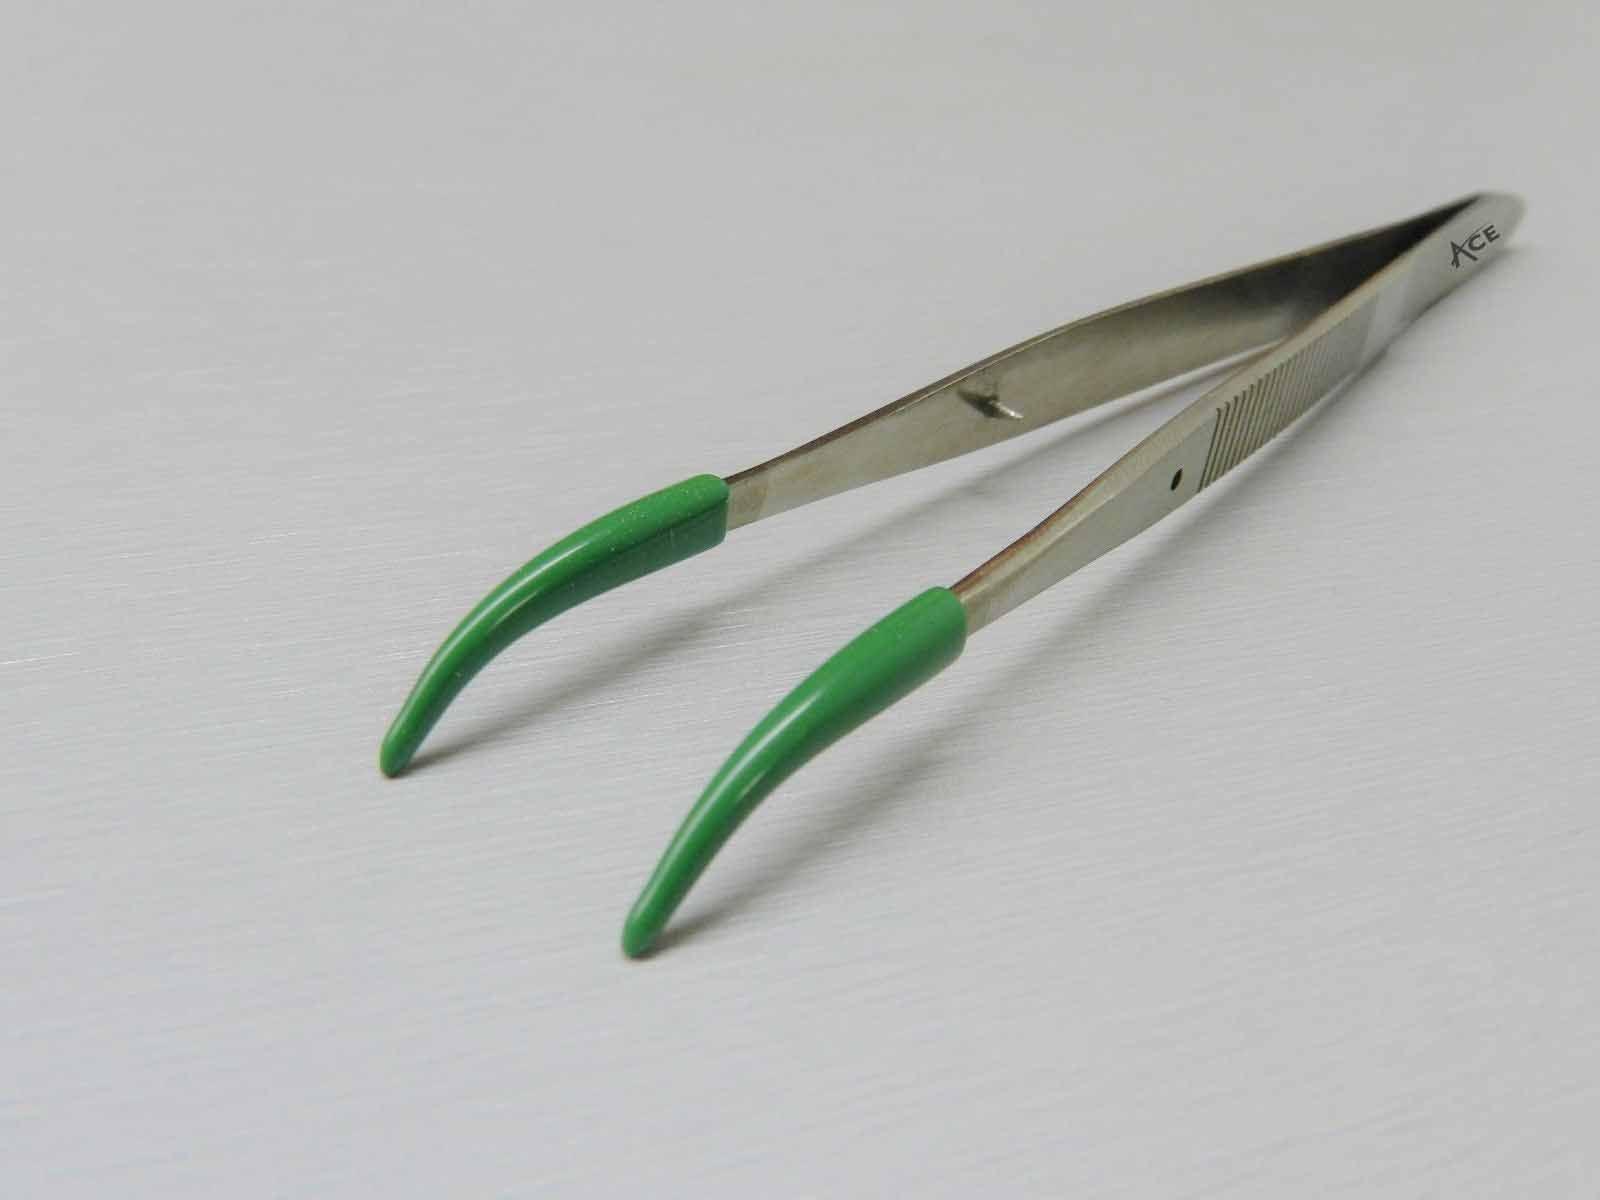 ACE Tweezers Curved Tip Rubber Tips PVC Coated Curved Tweezer Jewelry Hobby Craft